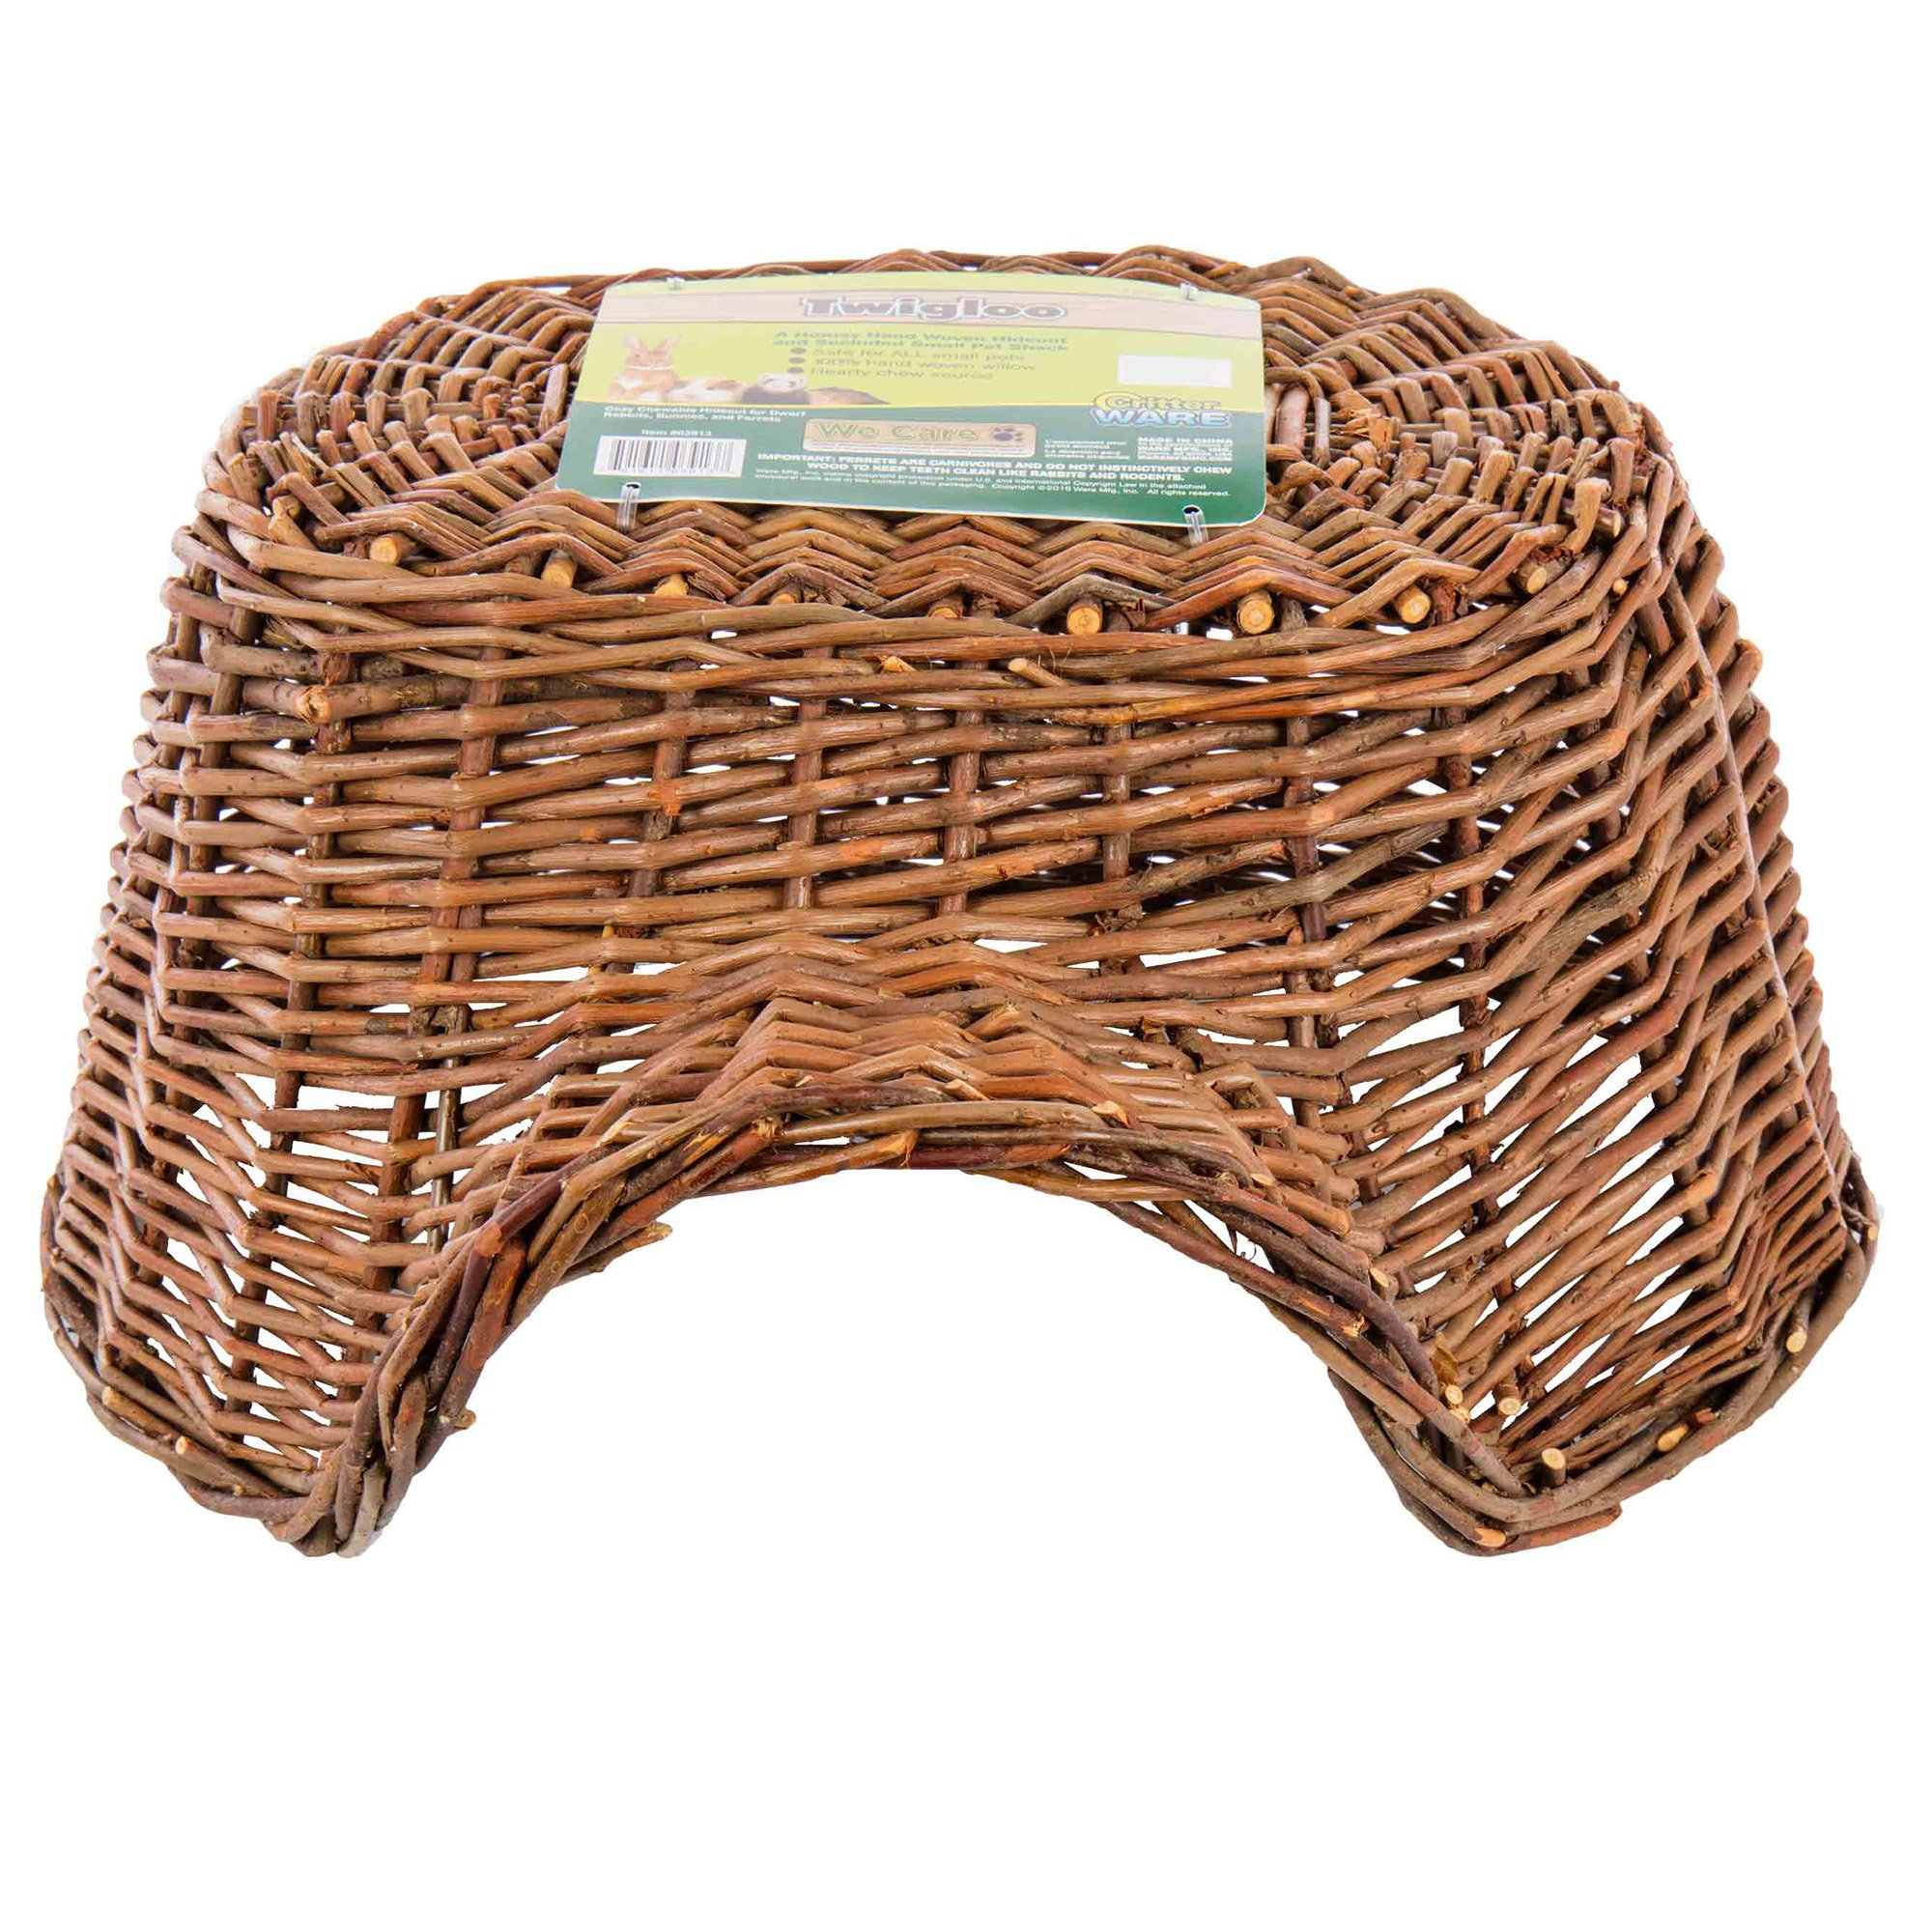 Ware Manufacturing Hand Woven Willow Twigloo Small Pet Hideout, Large